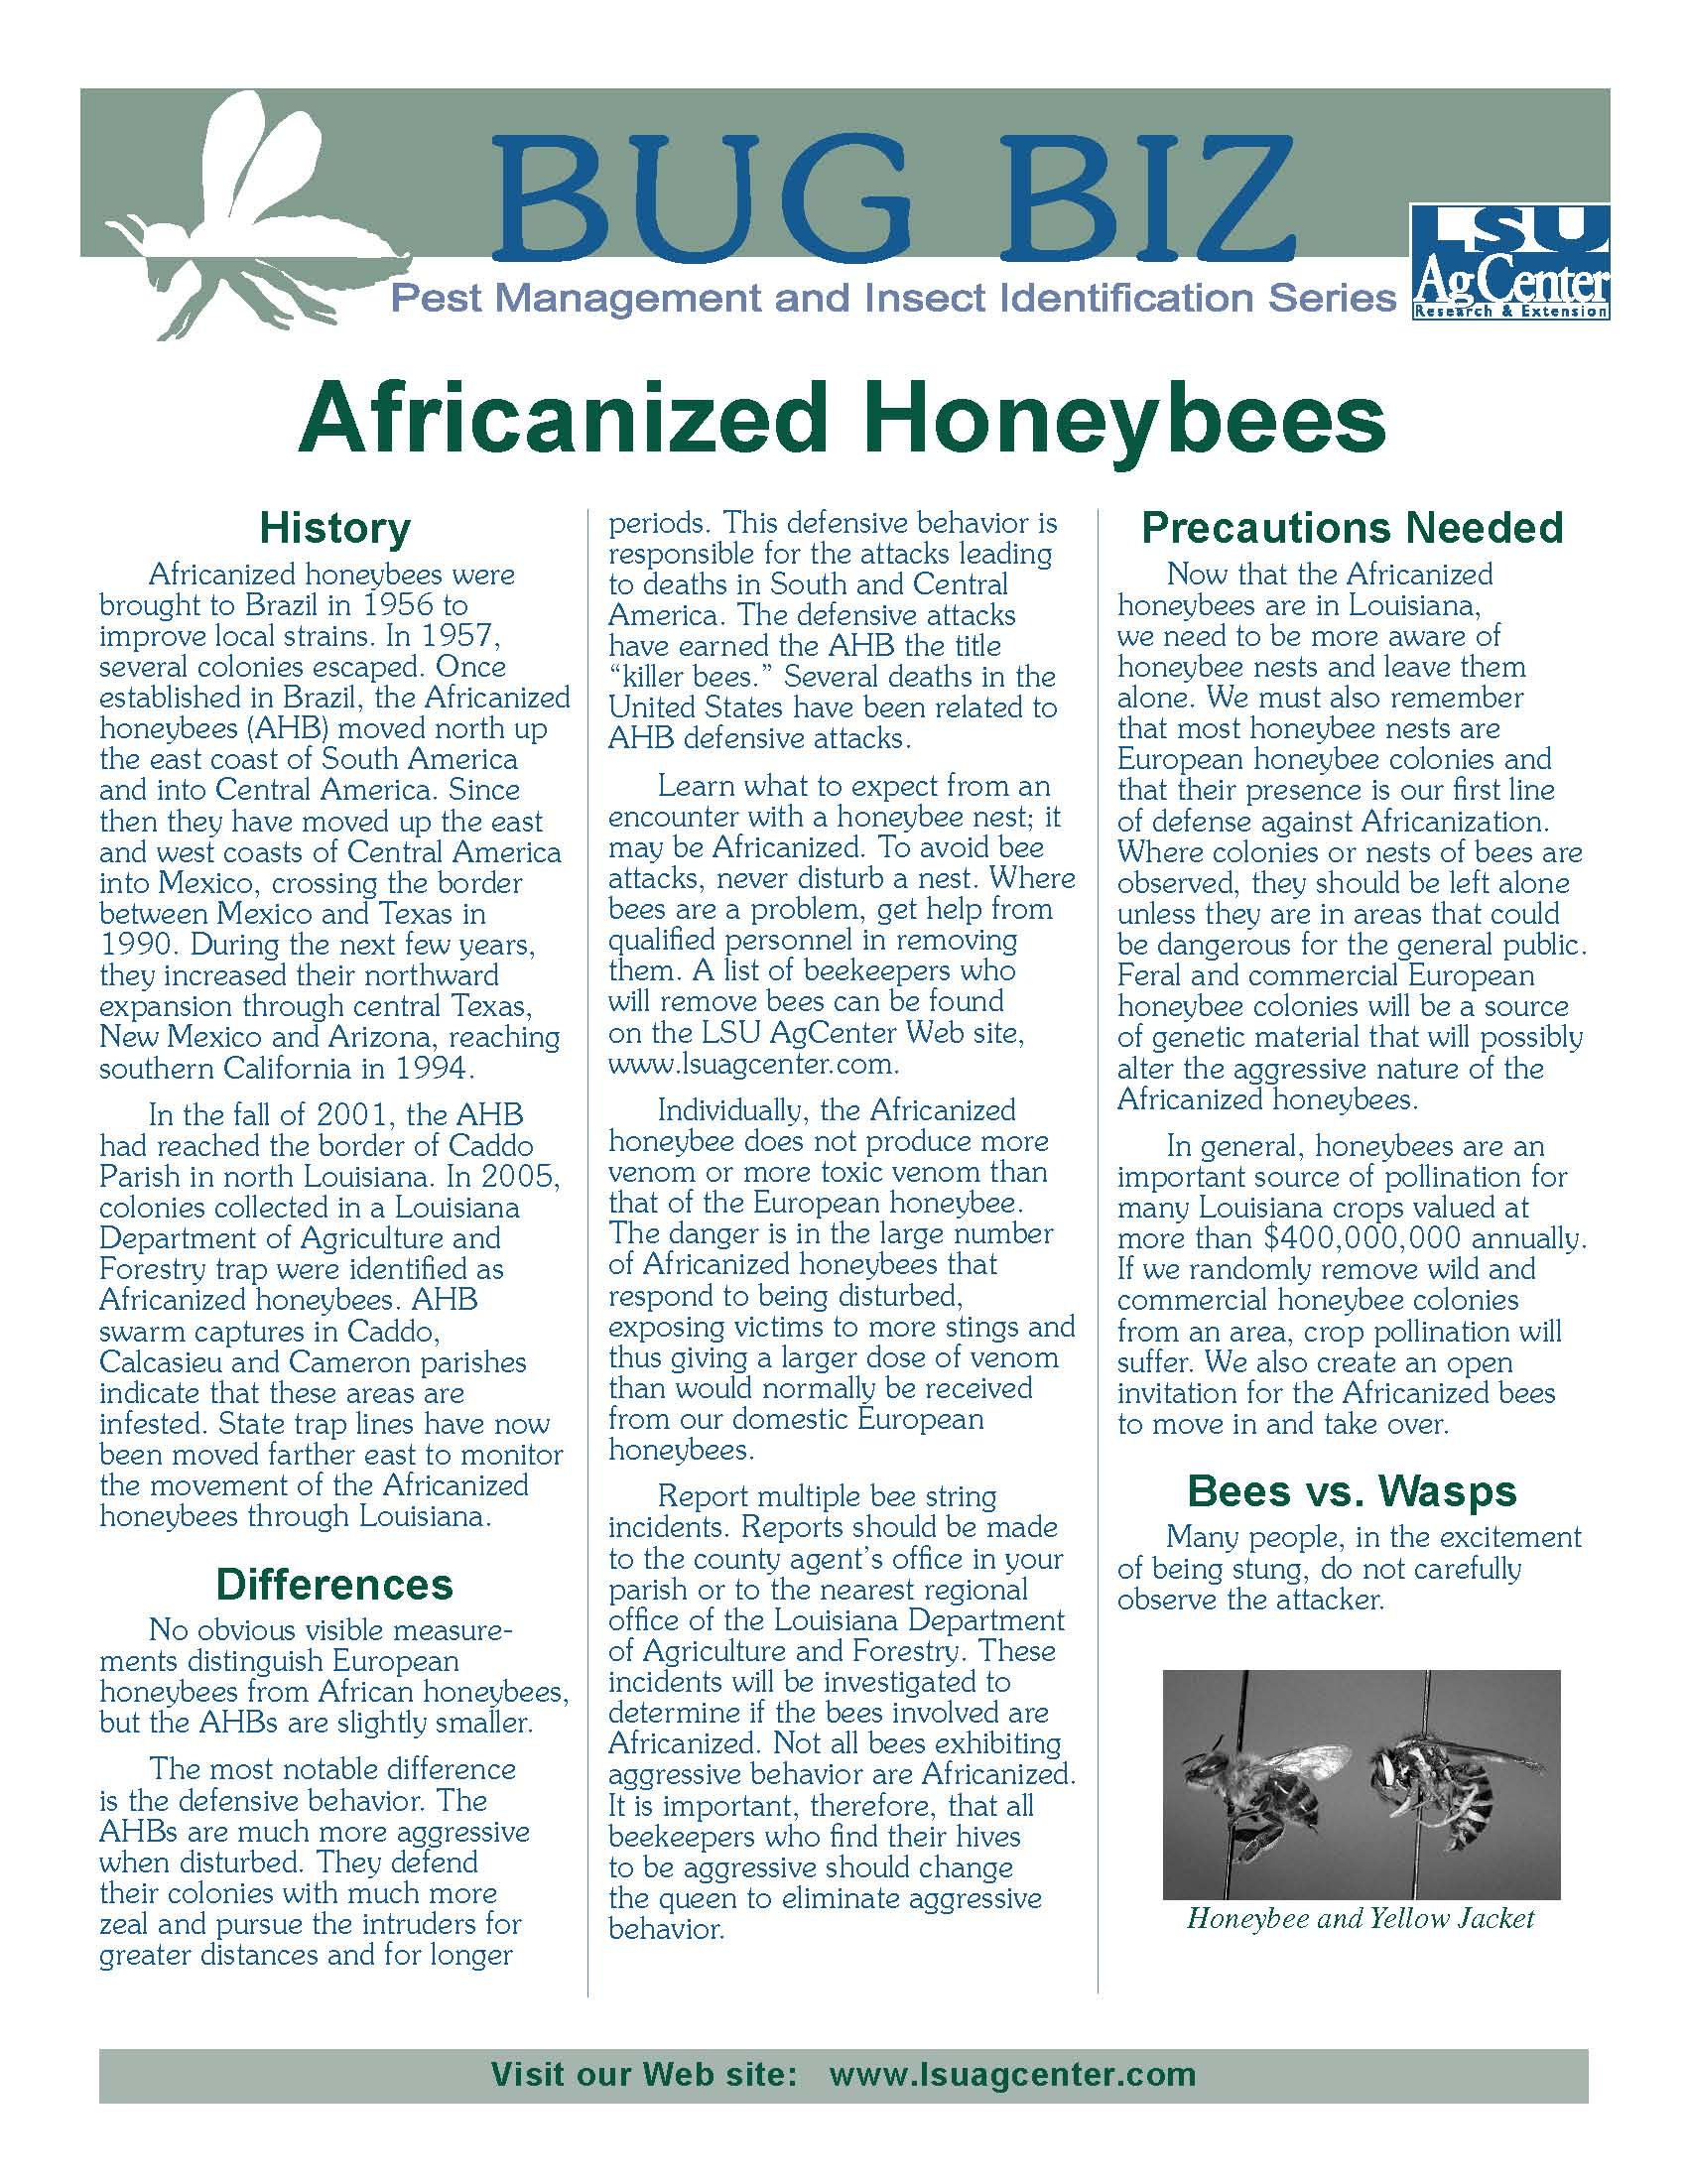 Bug Biz:  Africanized Honeybees